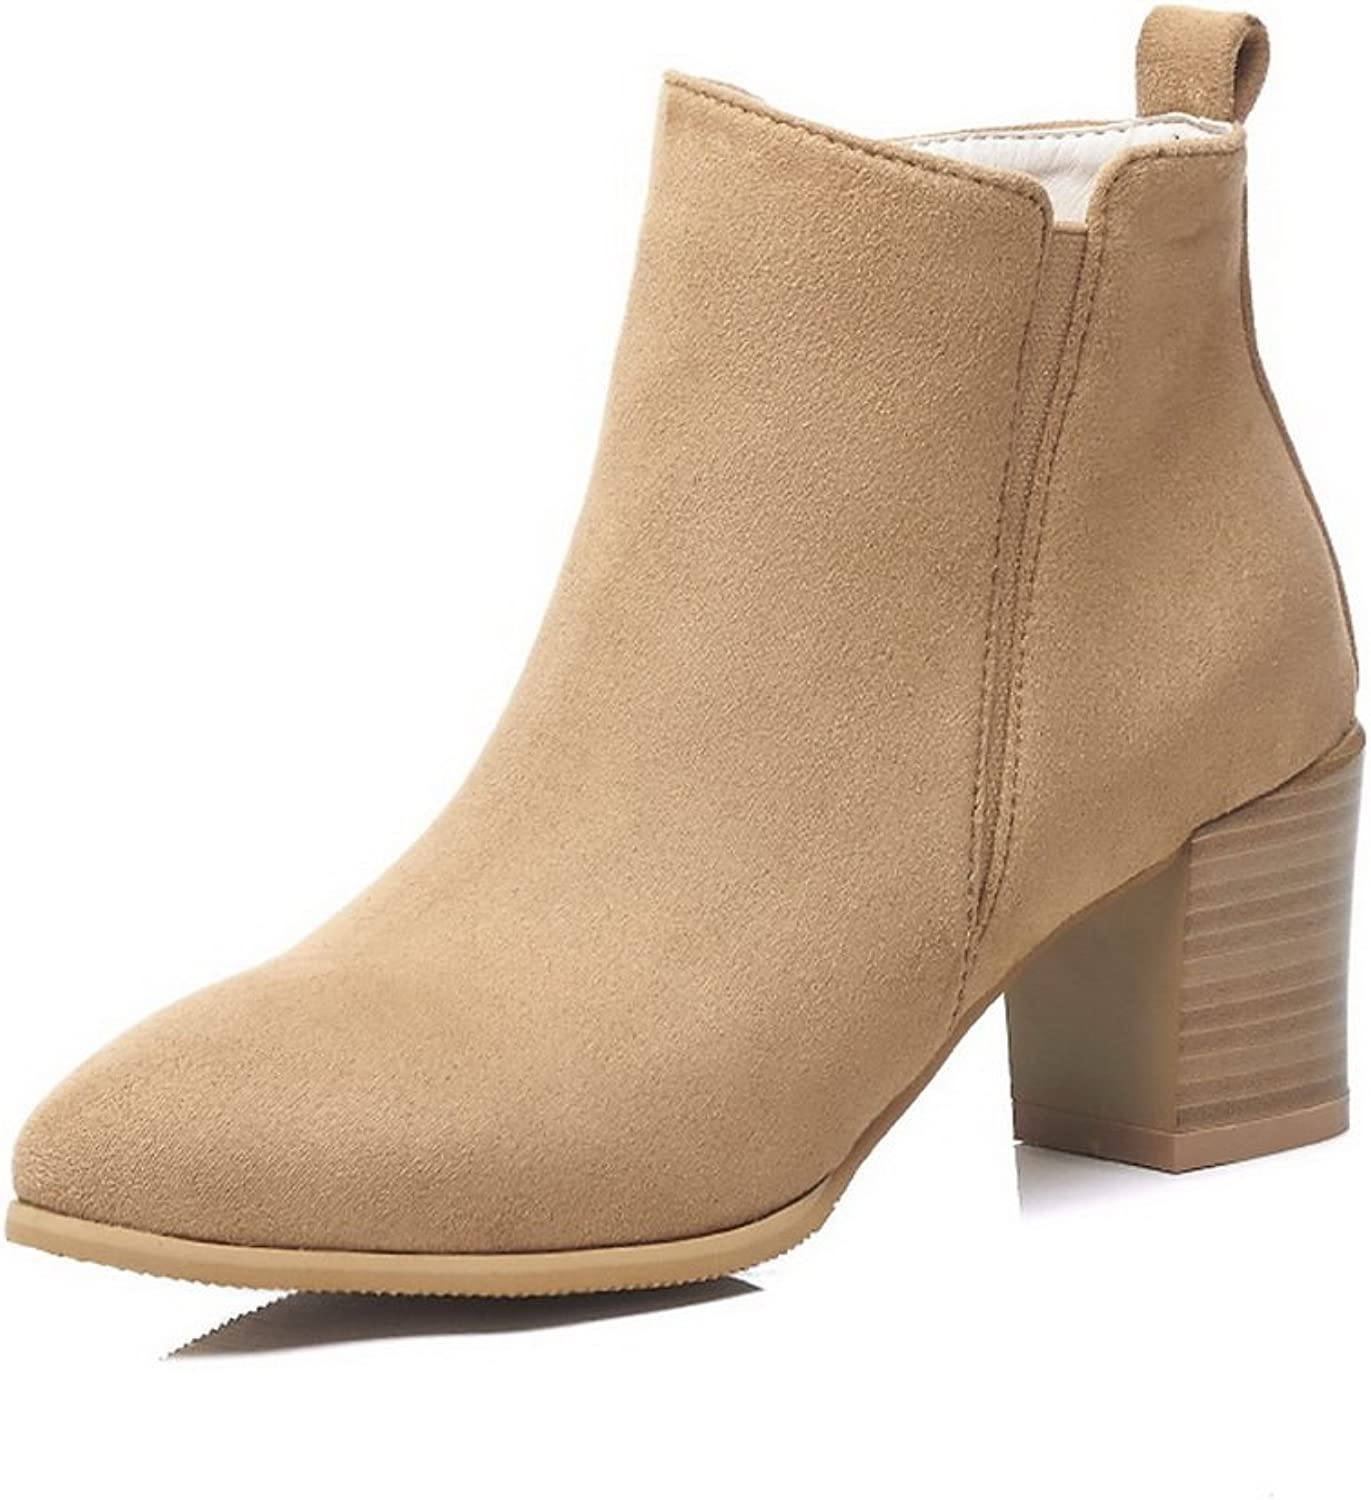 BalaMasa Womens Not_Water_Resistant Chunky Heels Pointed-Toe Suede Boots ABL10487